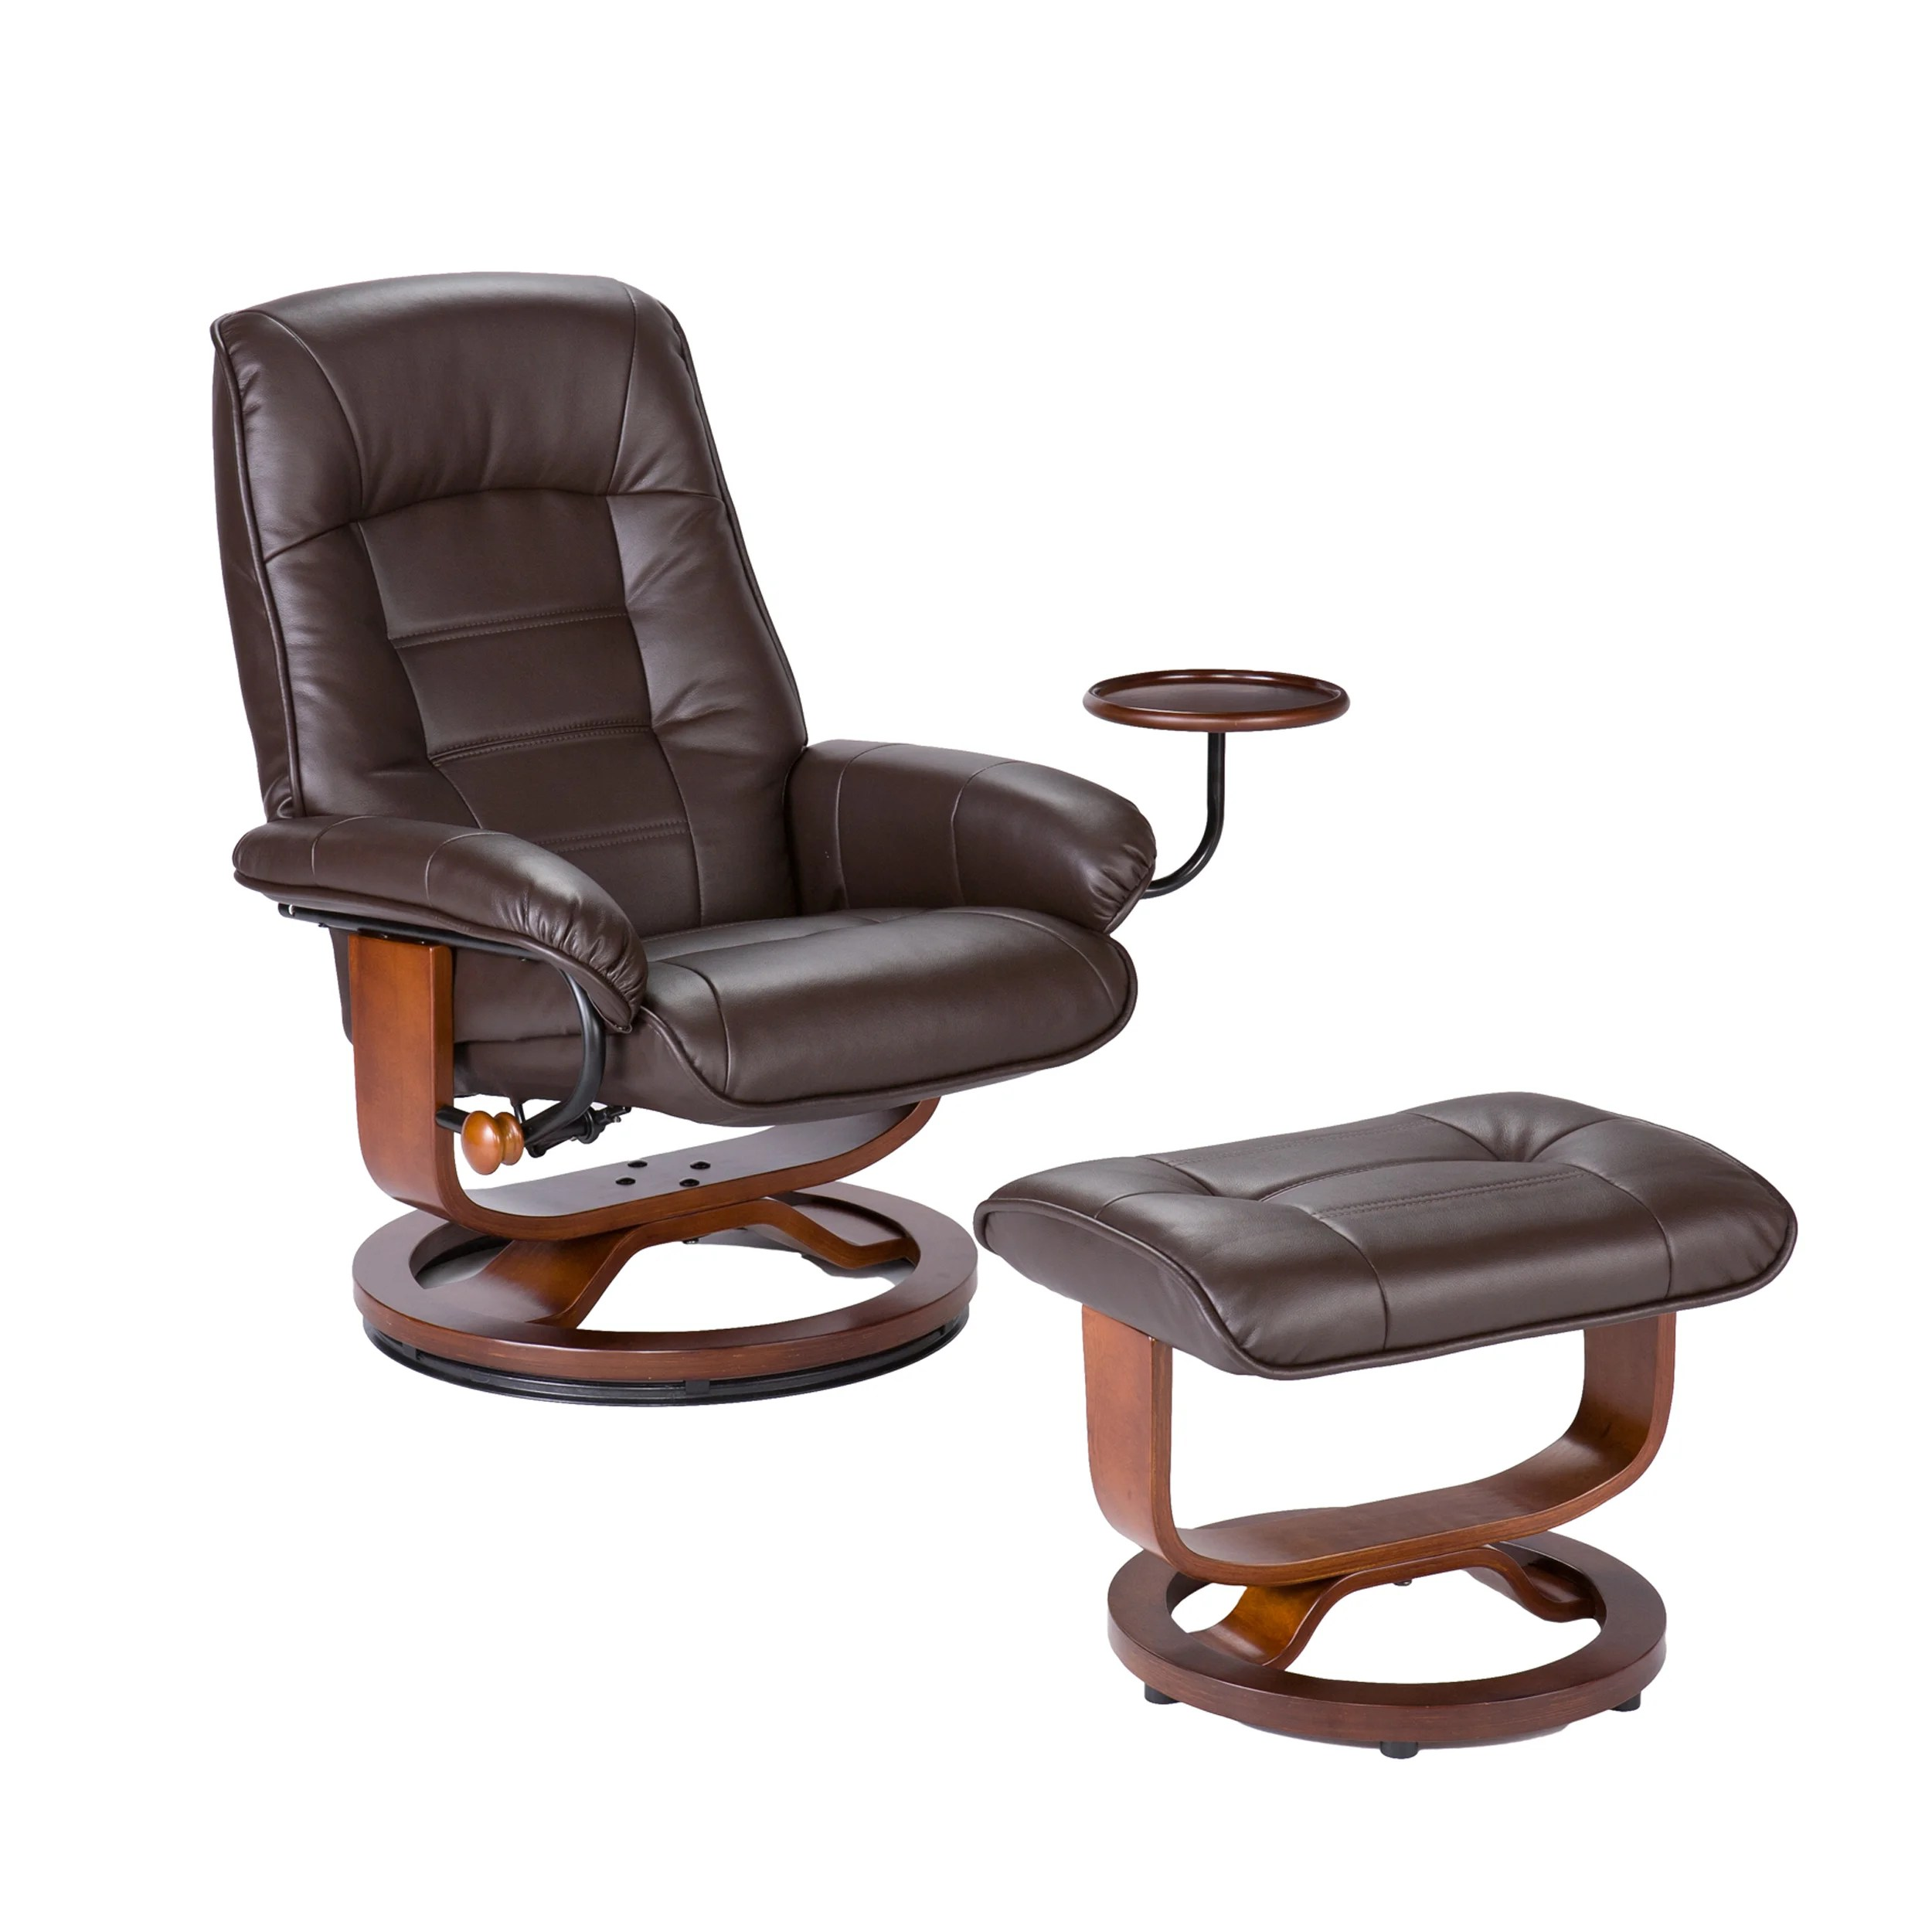 Stressless Sessel Sunrise.html Stressless Chair Knock Off Home Design Ideas